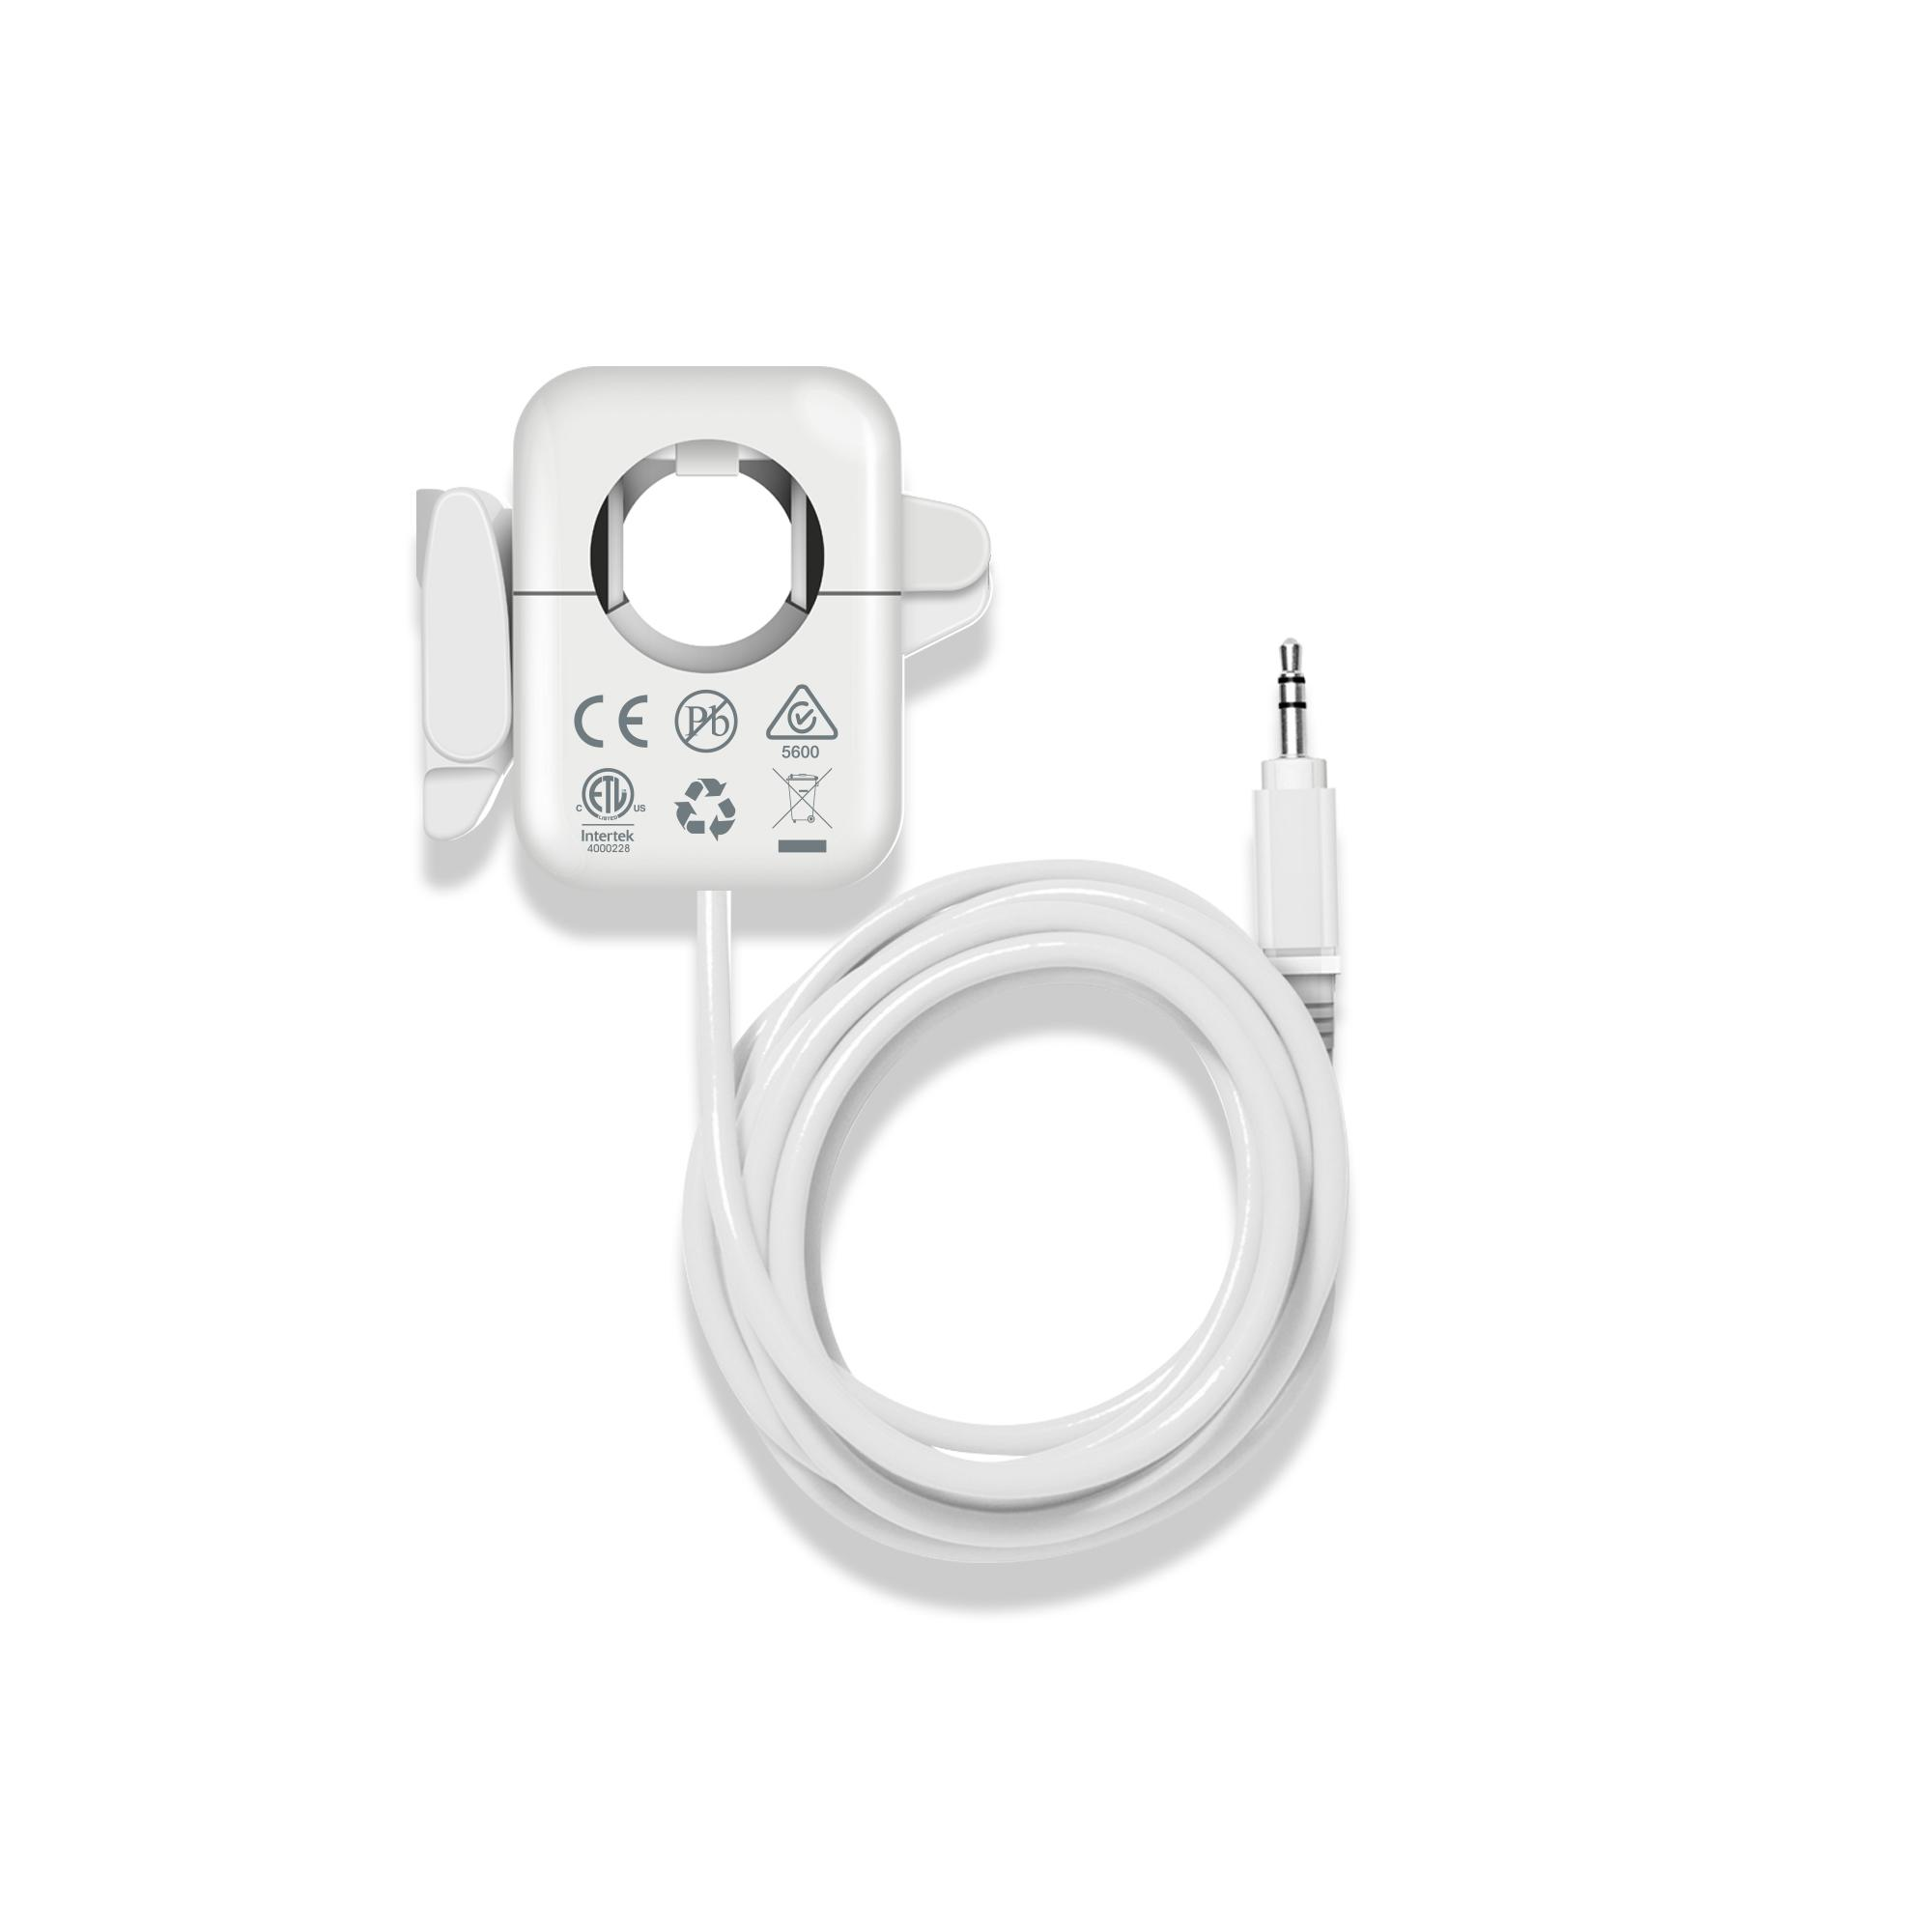 Efergy XL Large Sensor with 3.5mm Jackplug Fitting